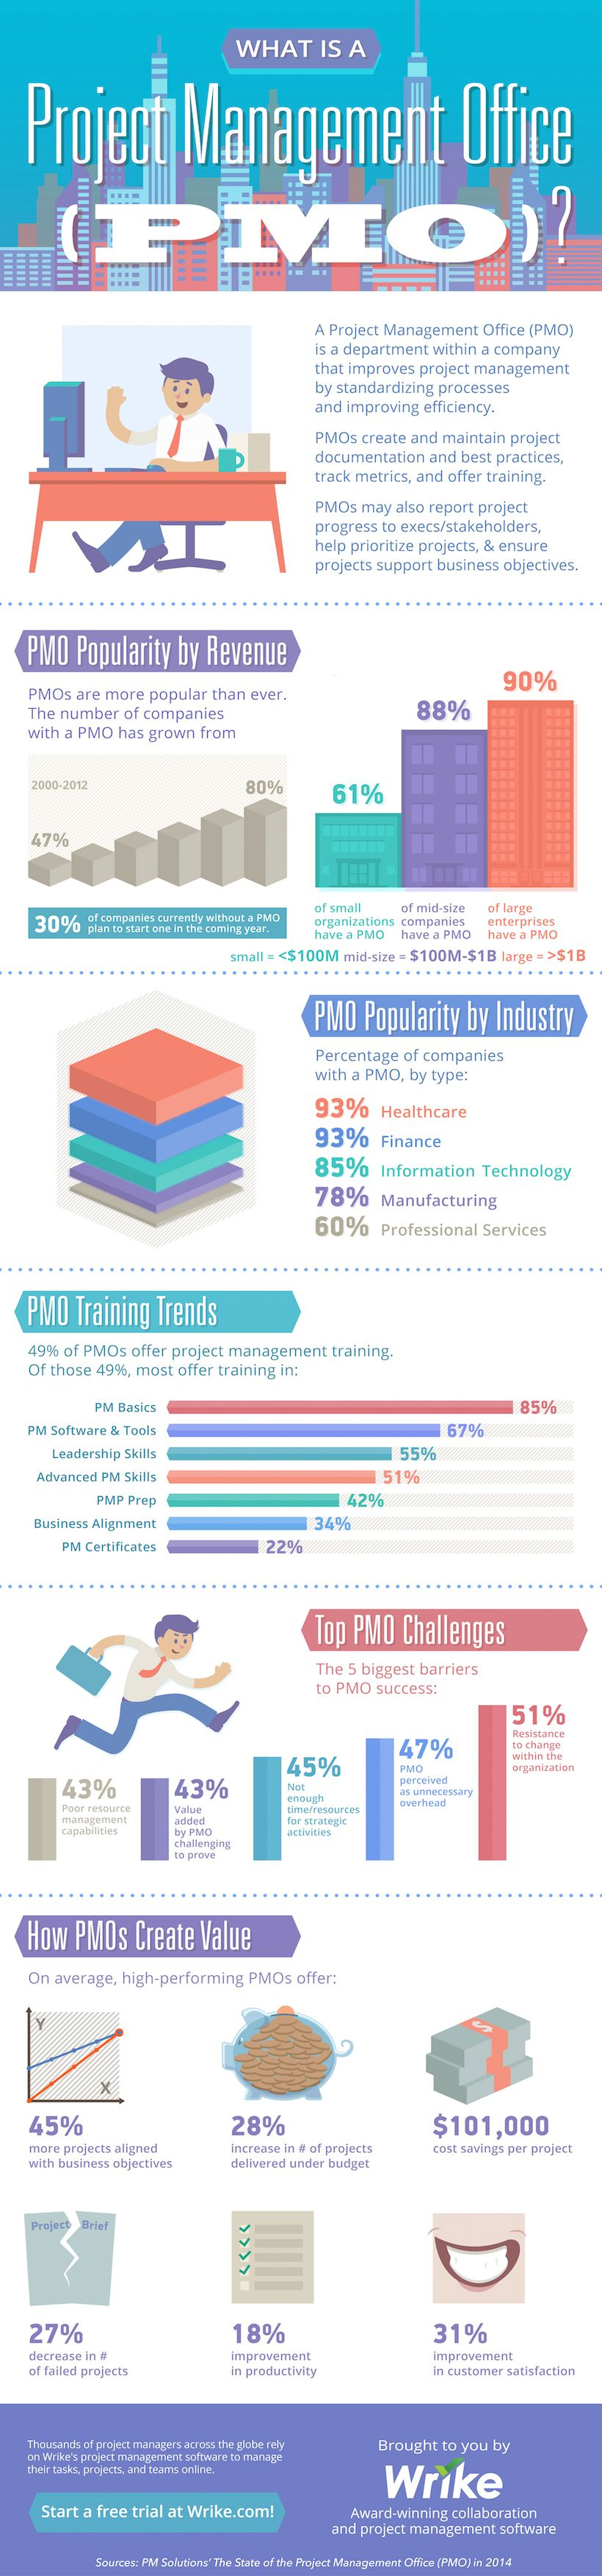 What Is A Project Management Office Pmo Infographic Staying